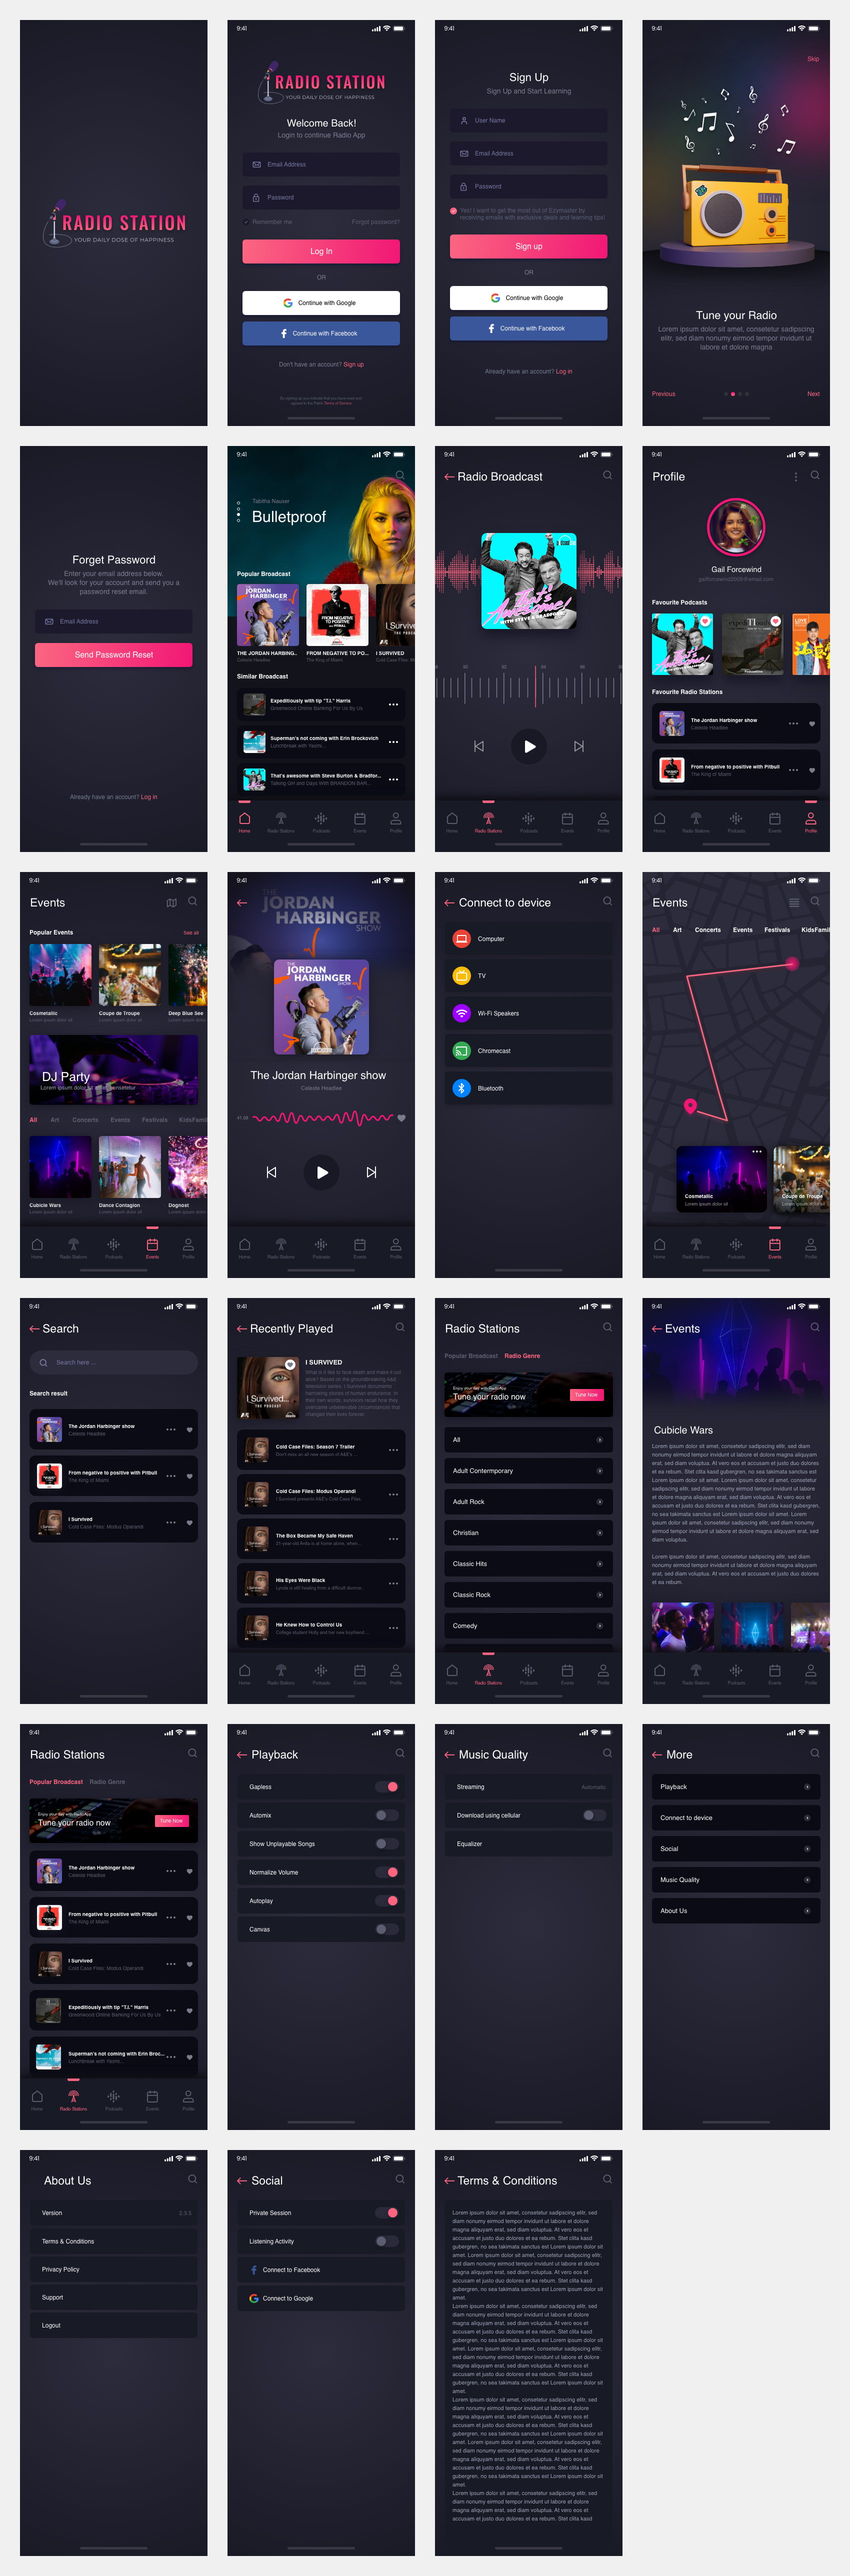 Podcast App Free UI Kit for Adobe XD - The Podcast is a free UI kit consist of 23 radio app screens which can help you to boost your design process. Easy to customize to fit your style. Also, this is a clean & minimal UI kit for mobile with a dark mode style.